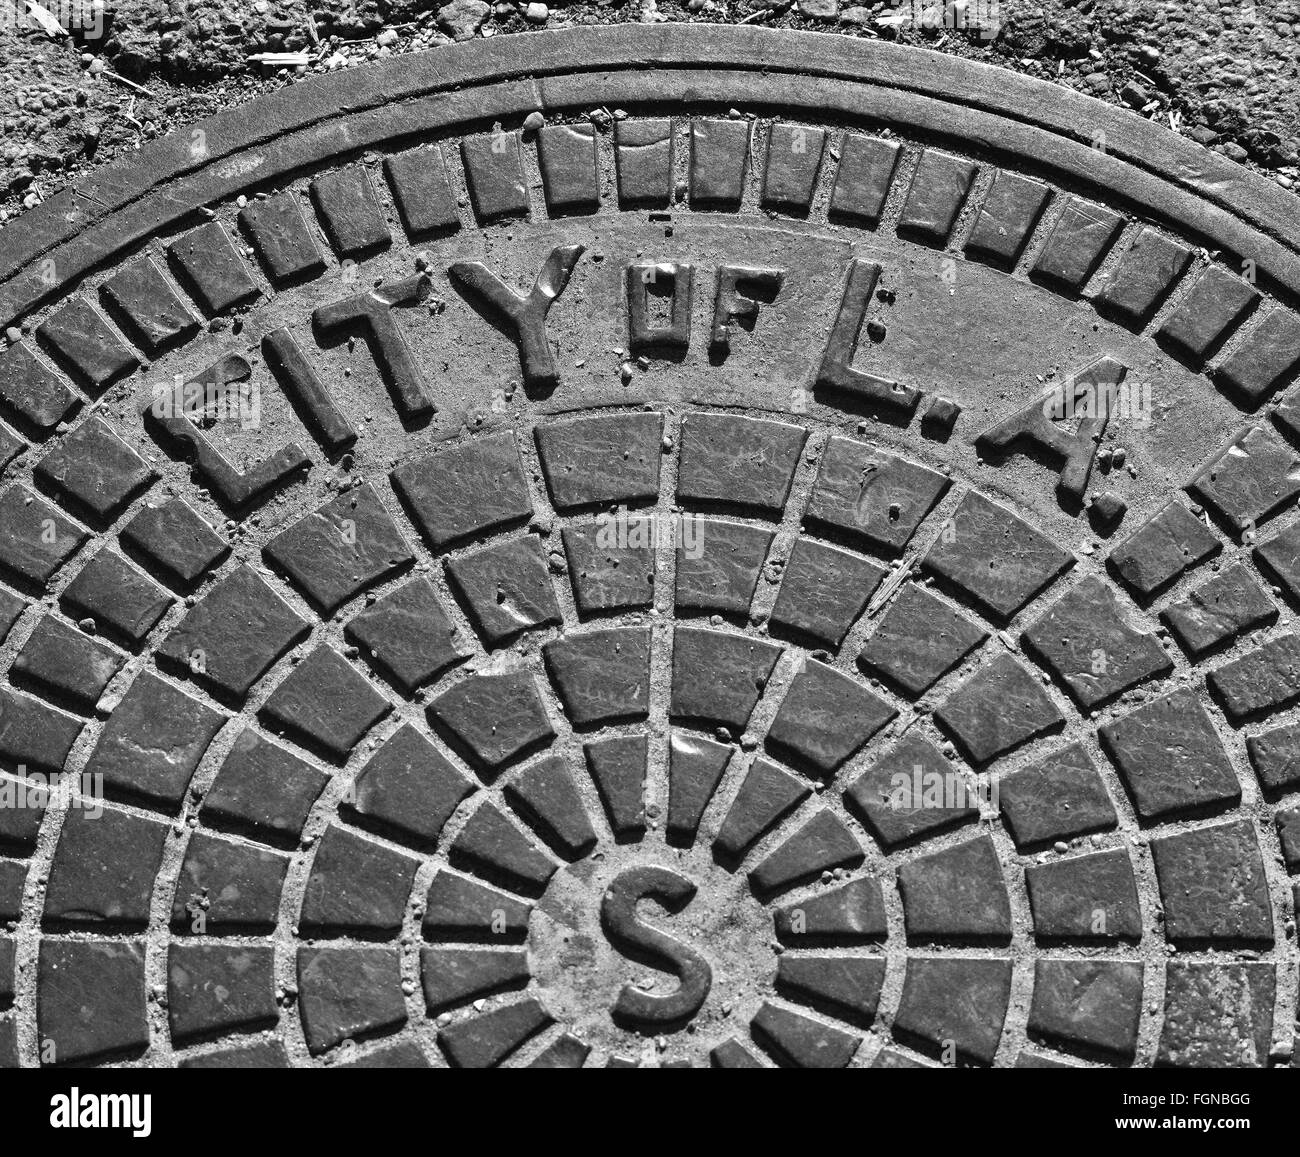 Street drains, sewer cover, water access, lighting access covers - Stock Image